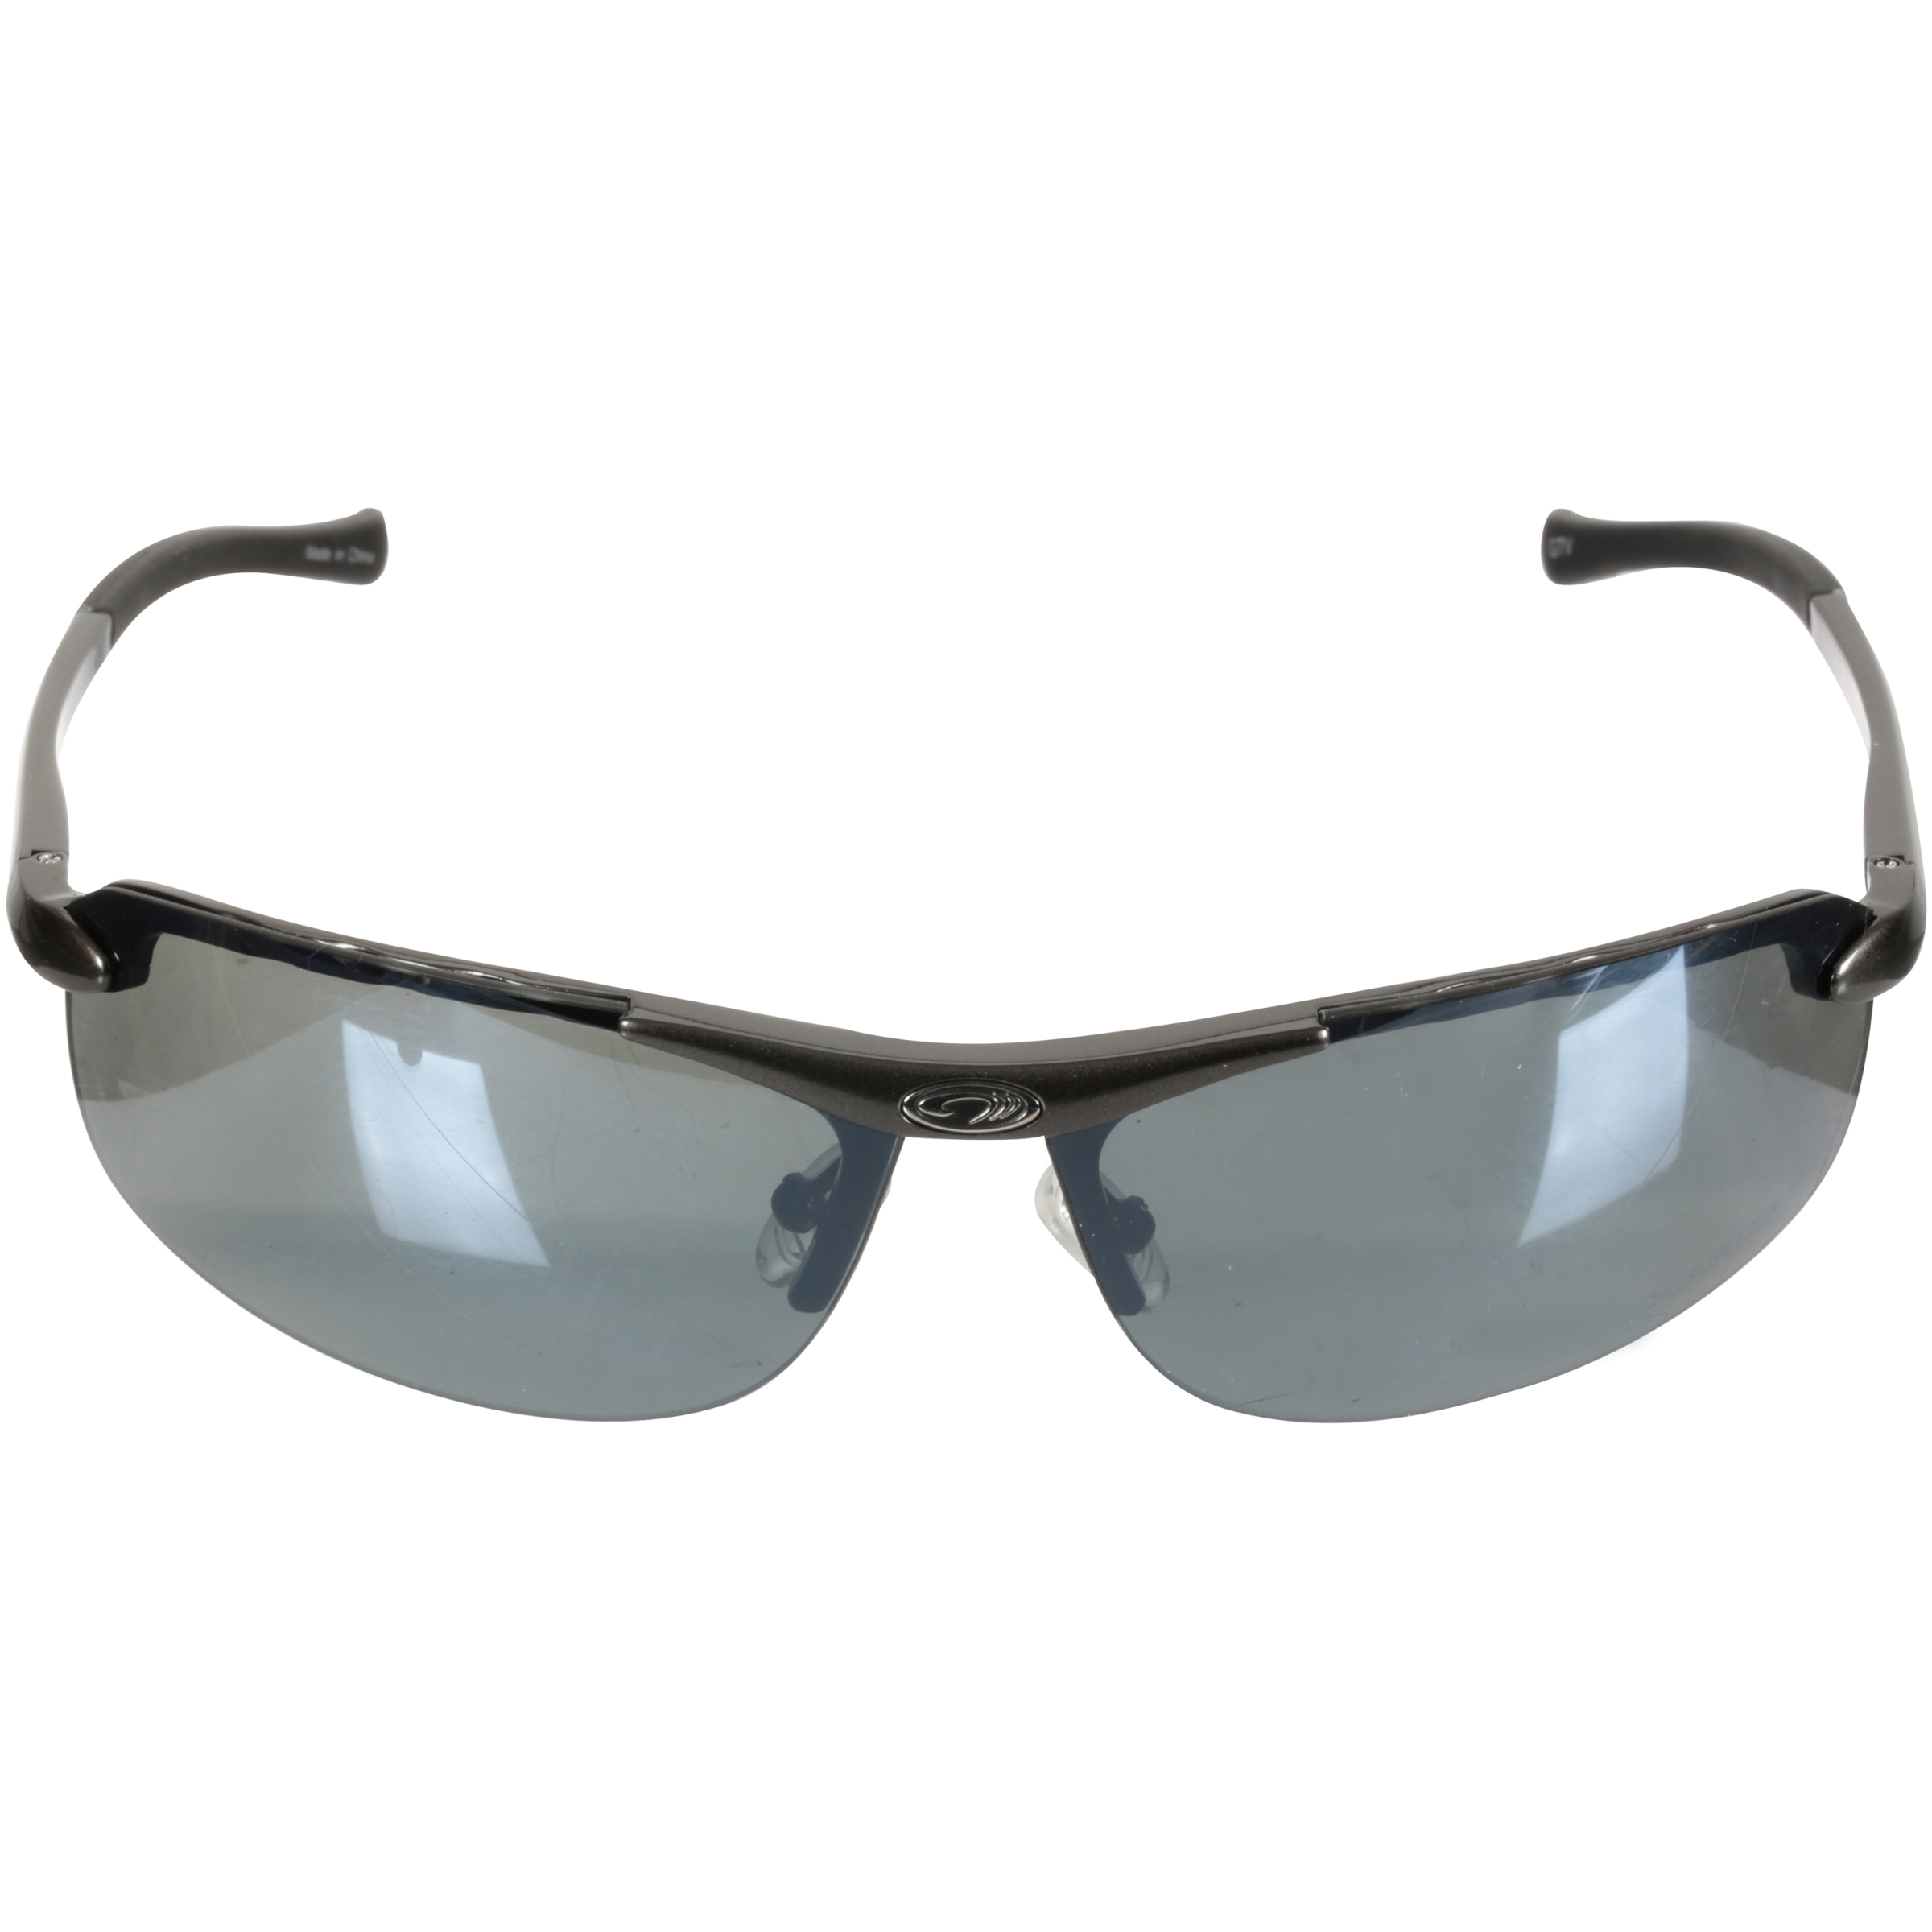 39b1c480de Octo8 - Octo® Tidal Wave Aluminum Alloy Frame Polarized Optics Sunglasses -  Walmart.com